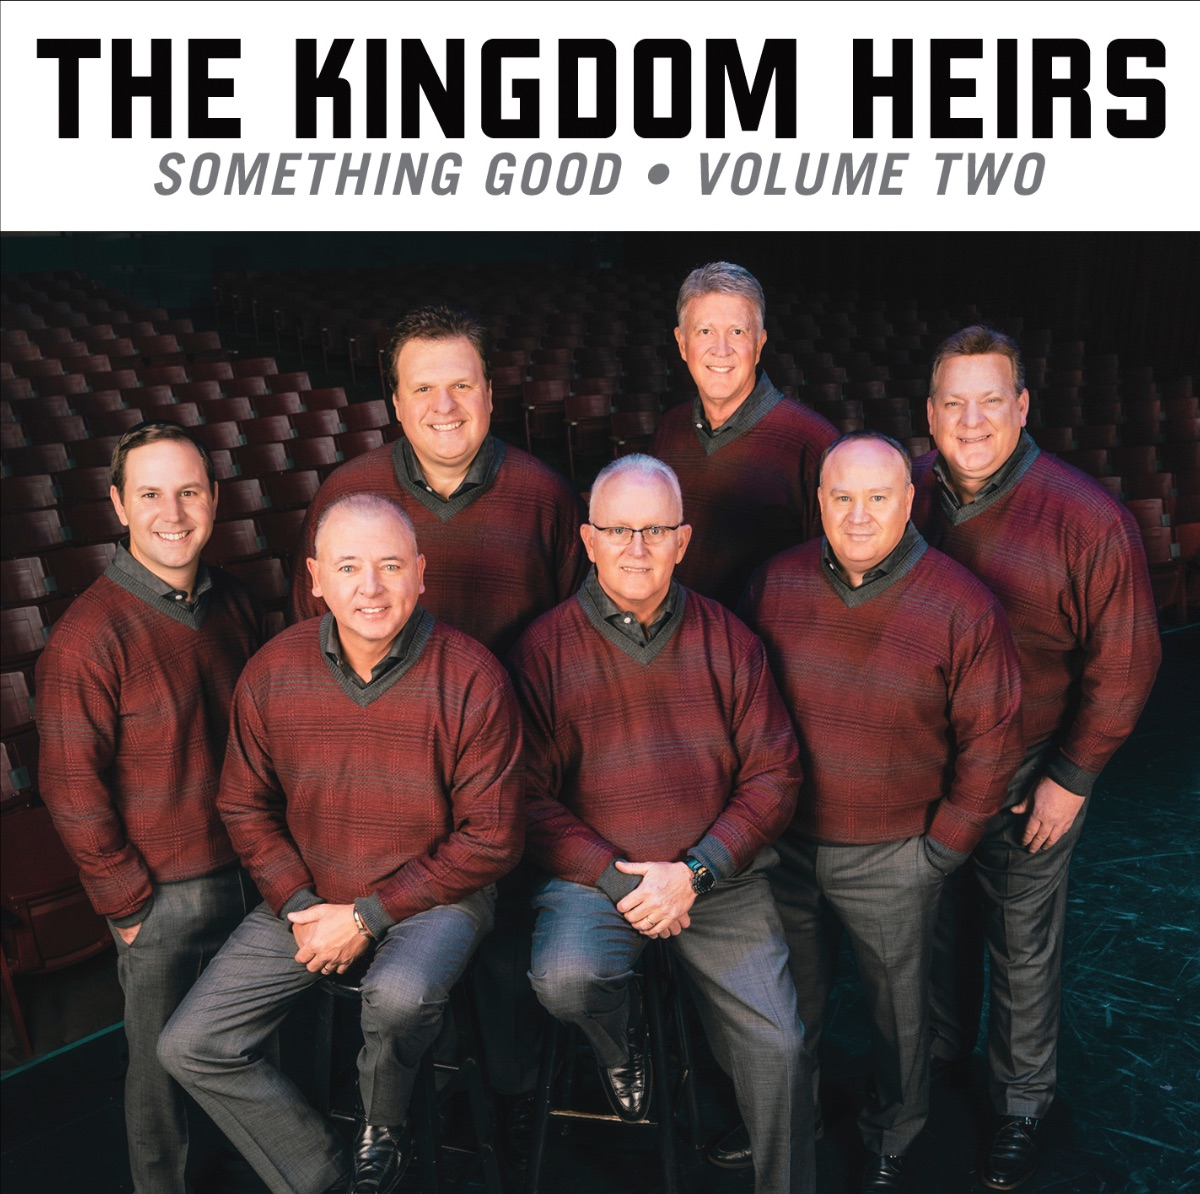 The Kingdom Heirs claim #1 spot on Billboard Chart with Something Good Volume Two